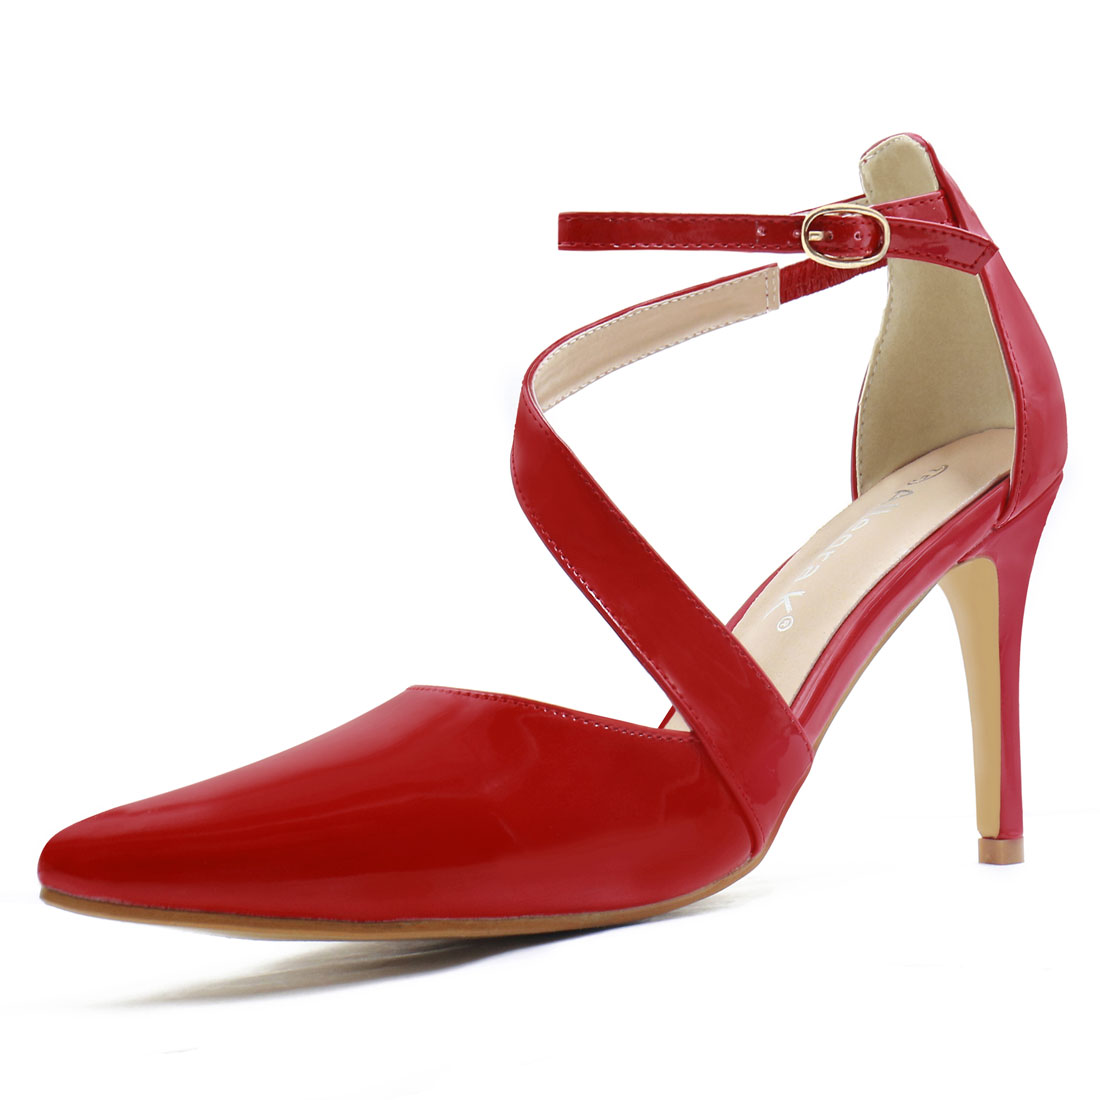 Women Asymmetrical Strap Stiletto Heel Pointy-Toe Pumps Red US 8.5